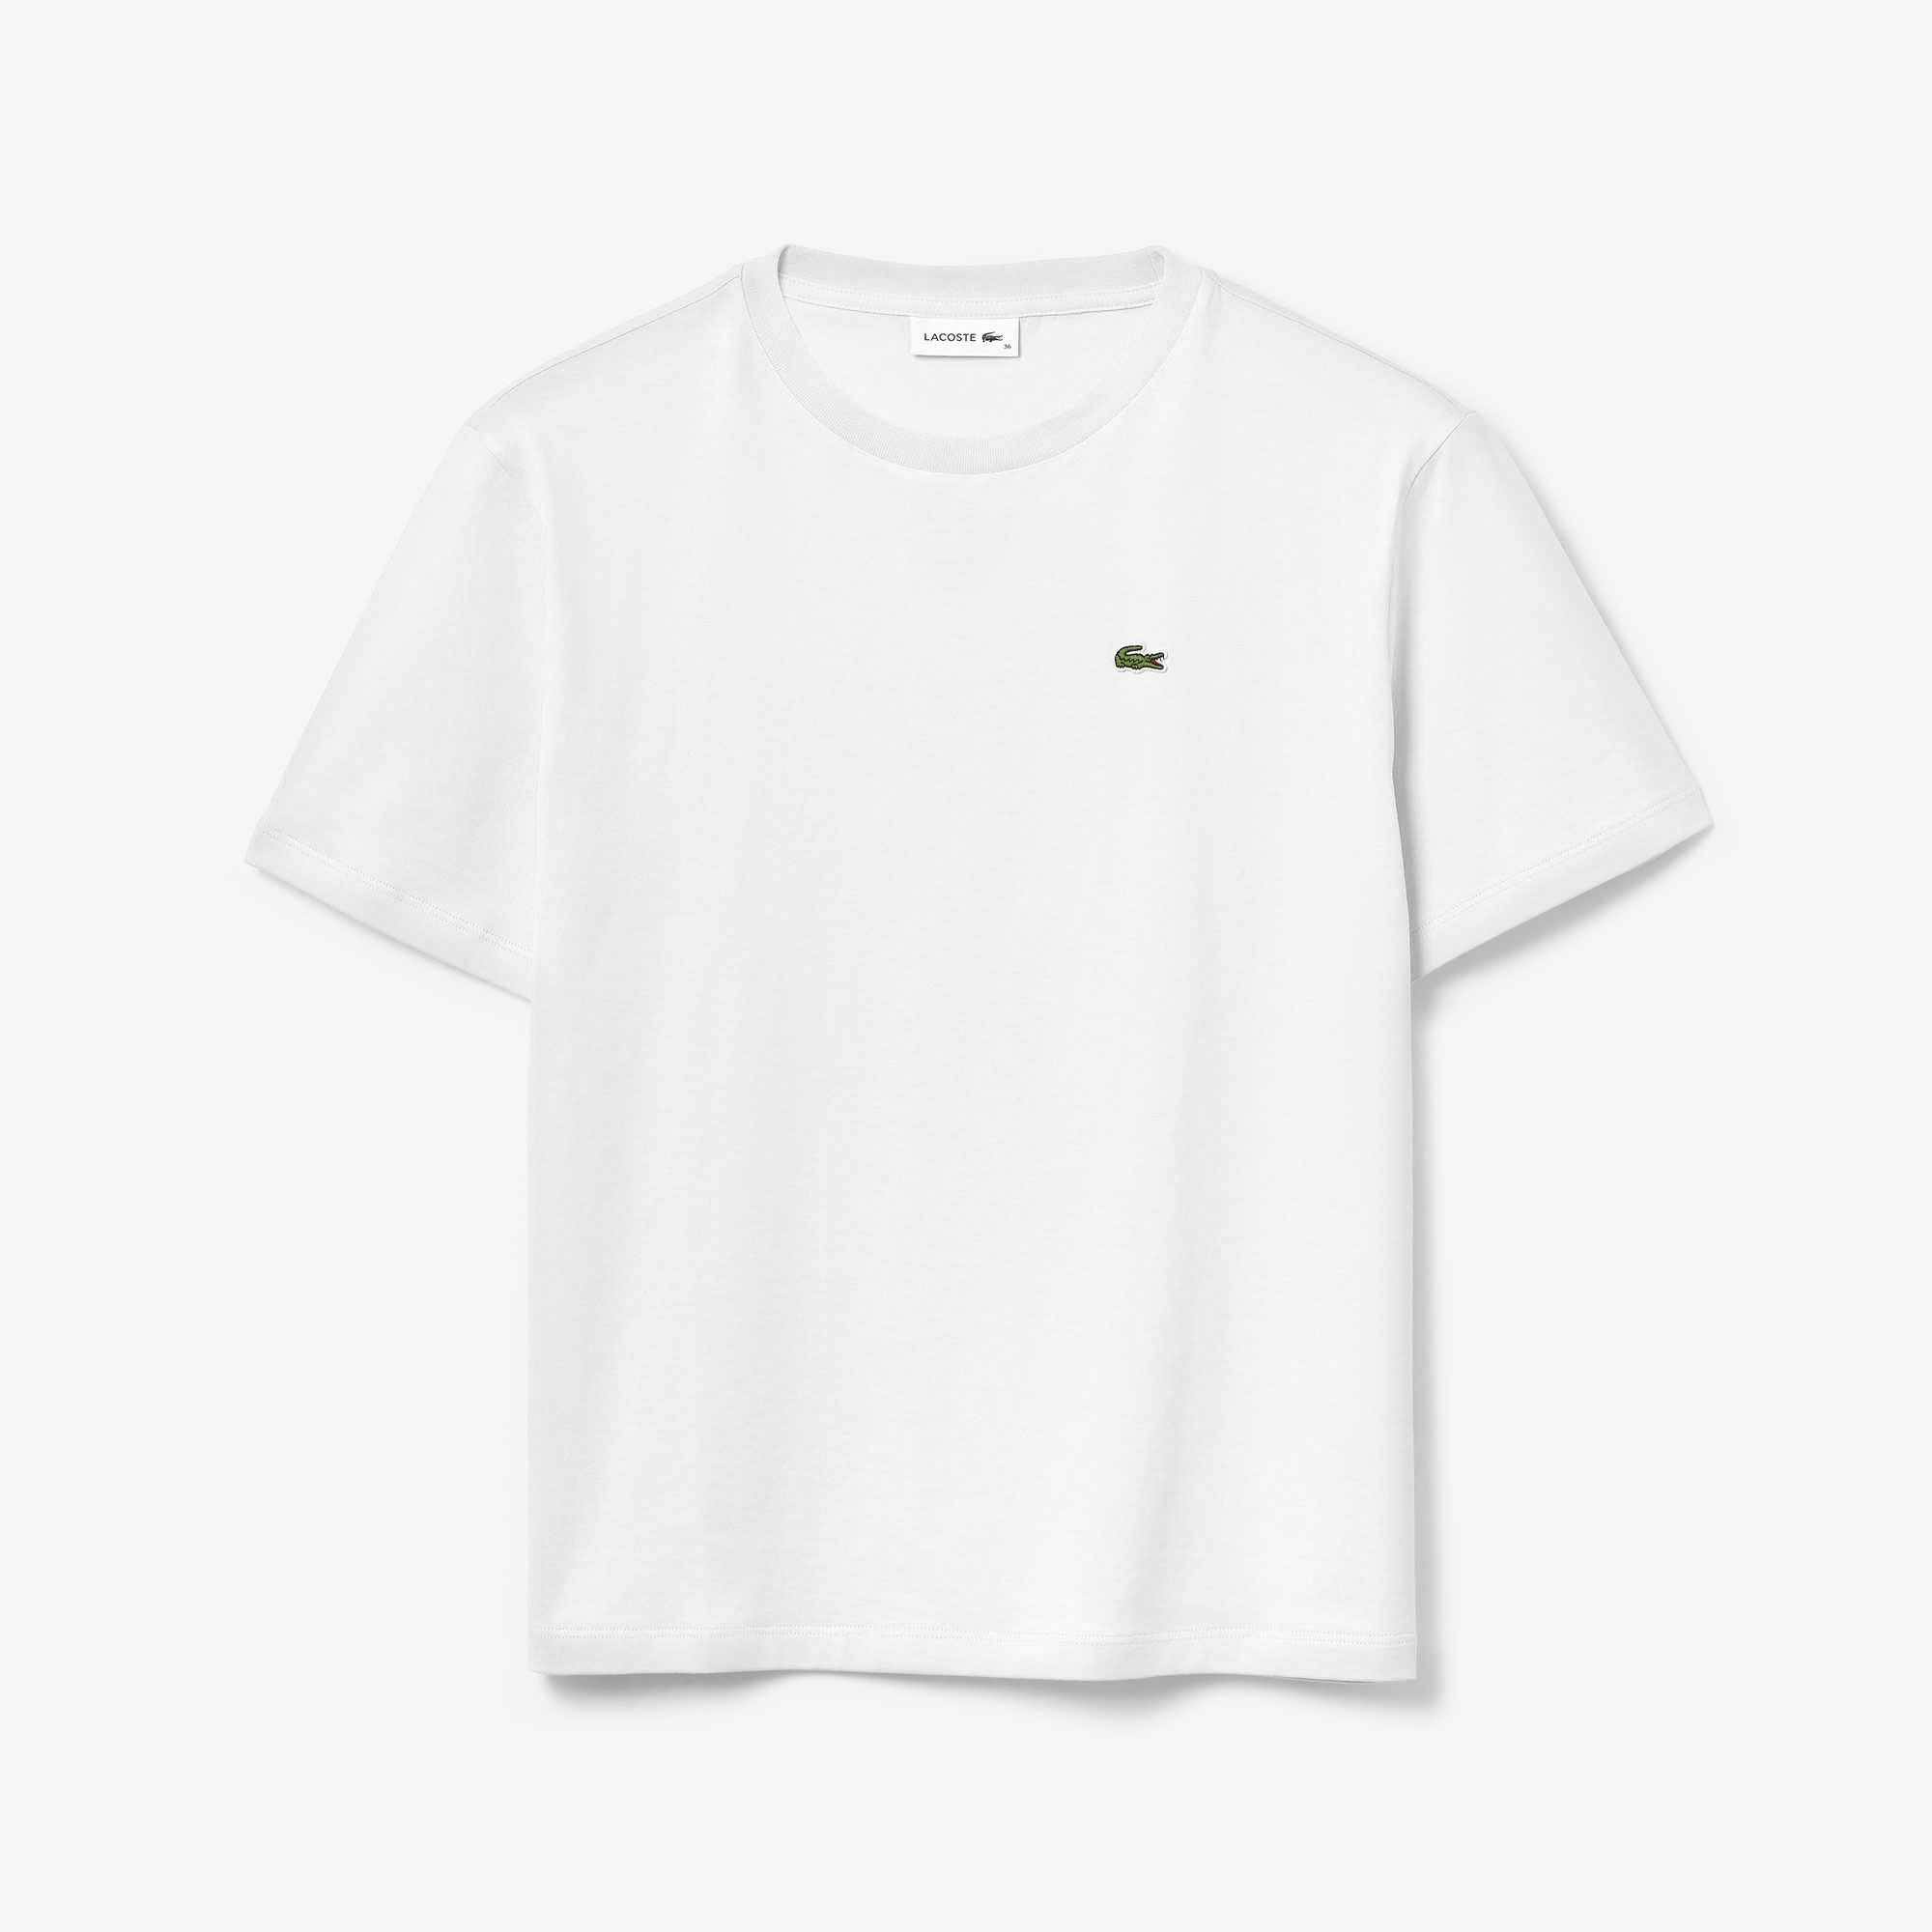 shop lacoste clothing